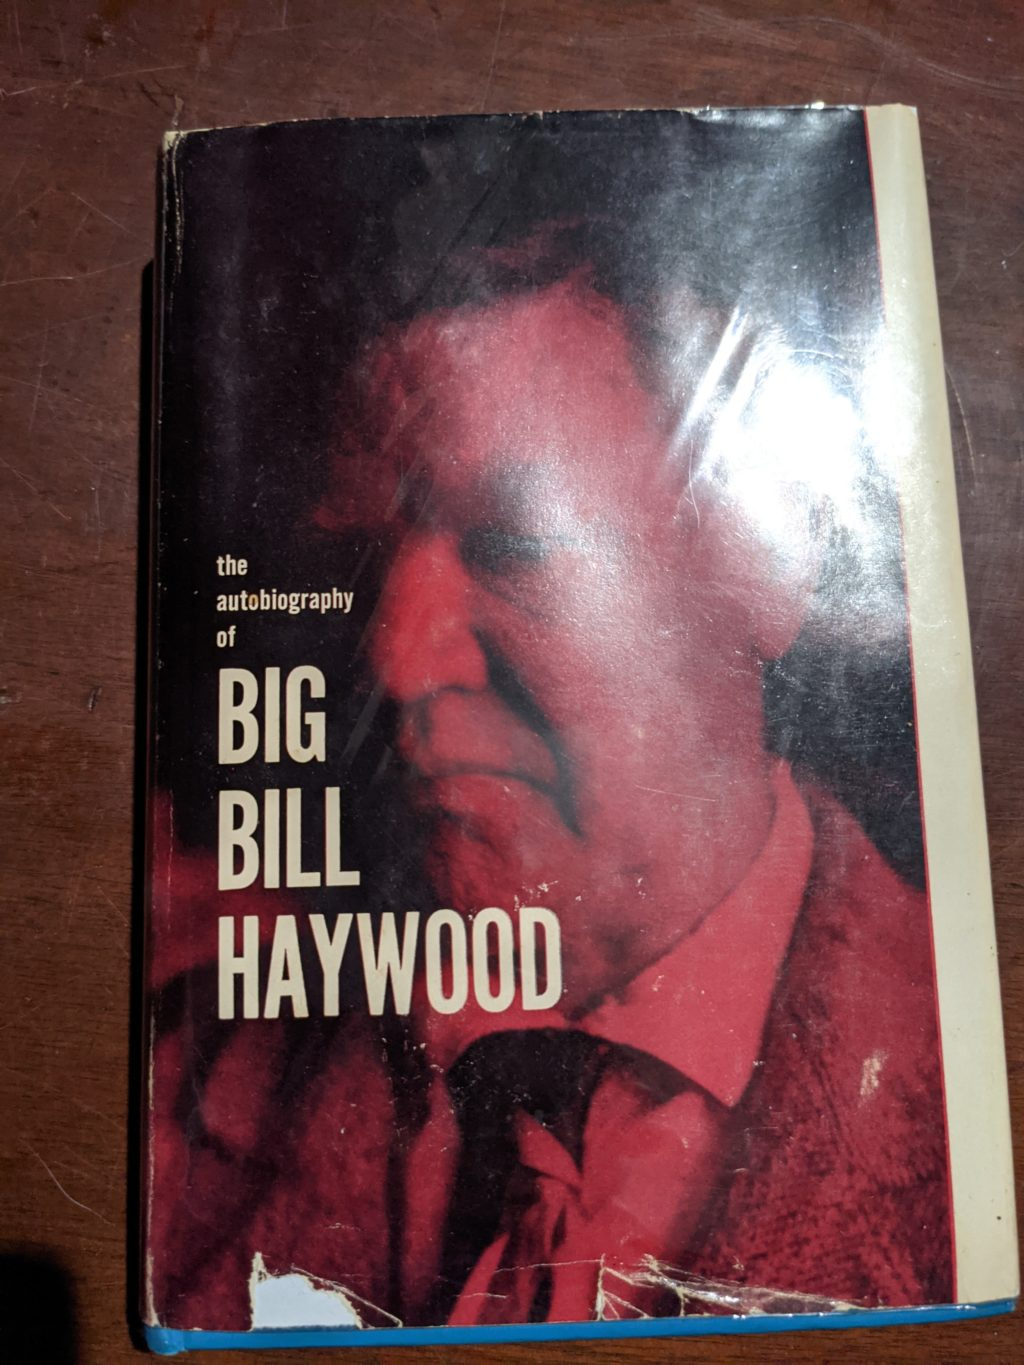 Photo of the cover of Bill Haywood's autobiography